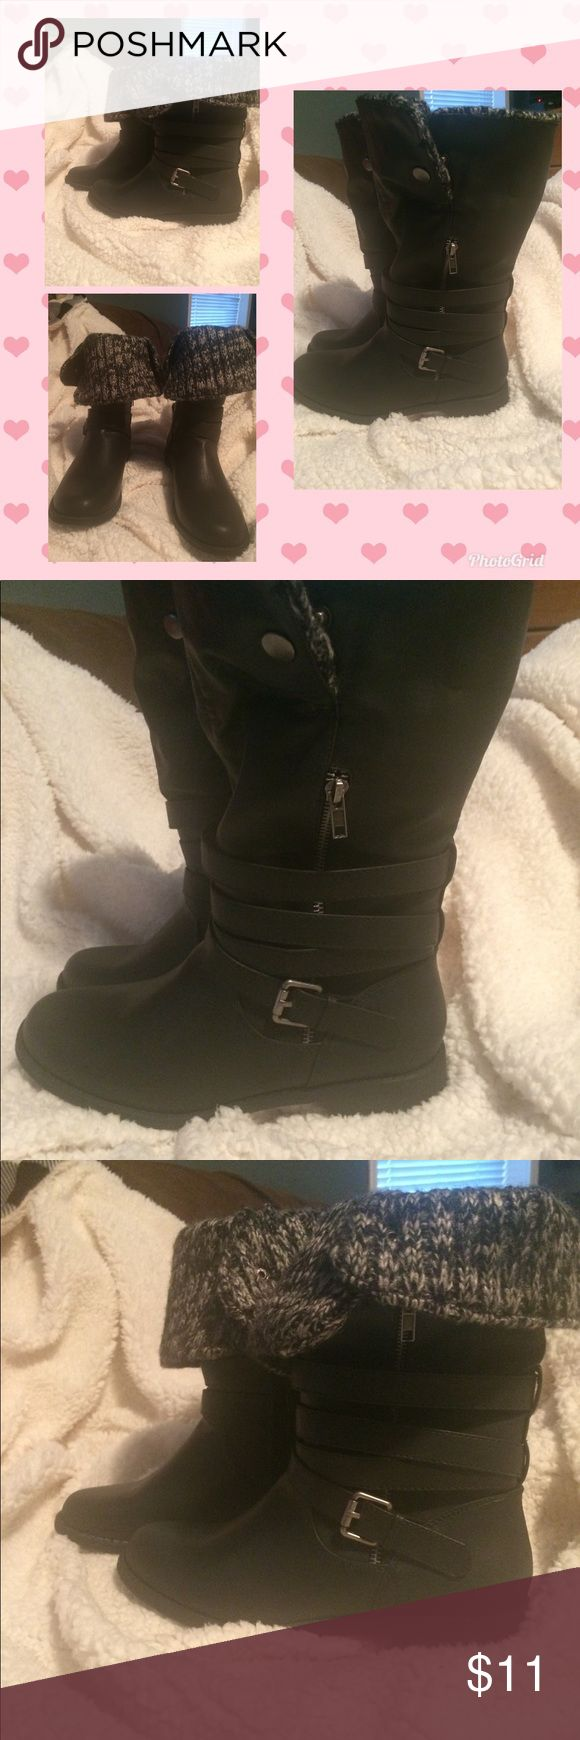 New JustFab Jordan boots New without tags, never worn, size 8.5  Jordan boot.  Super cute. JustFab Shoes Ankle Boots & Booties